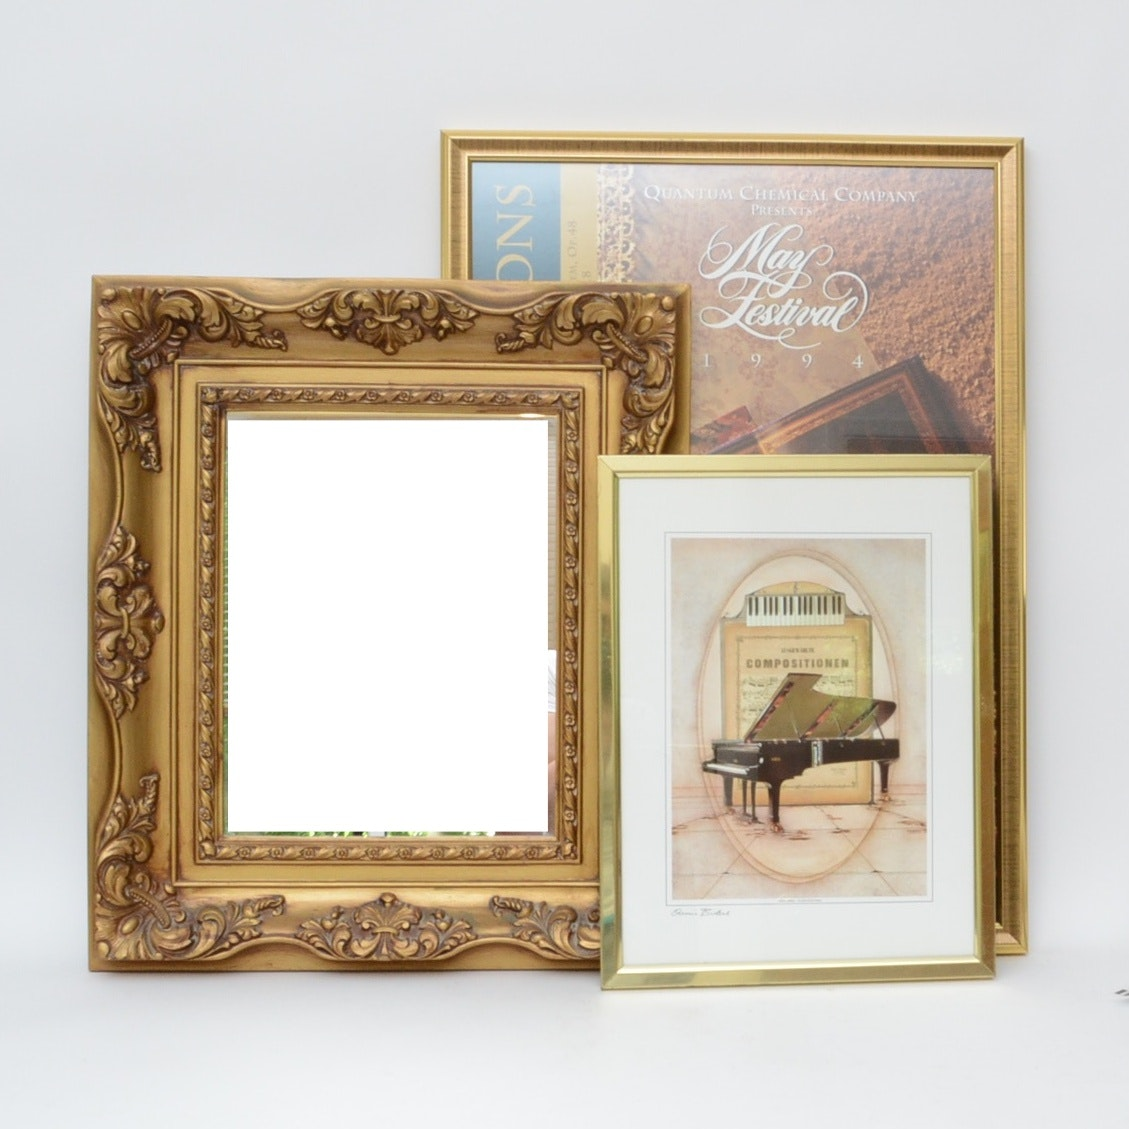 Music-Themed Artwork with Signed Print